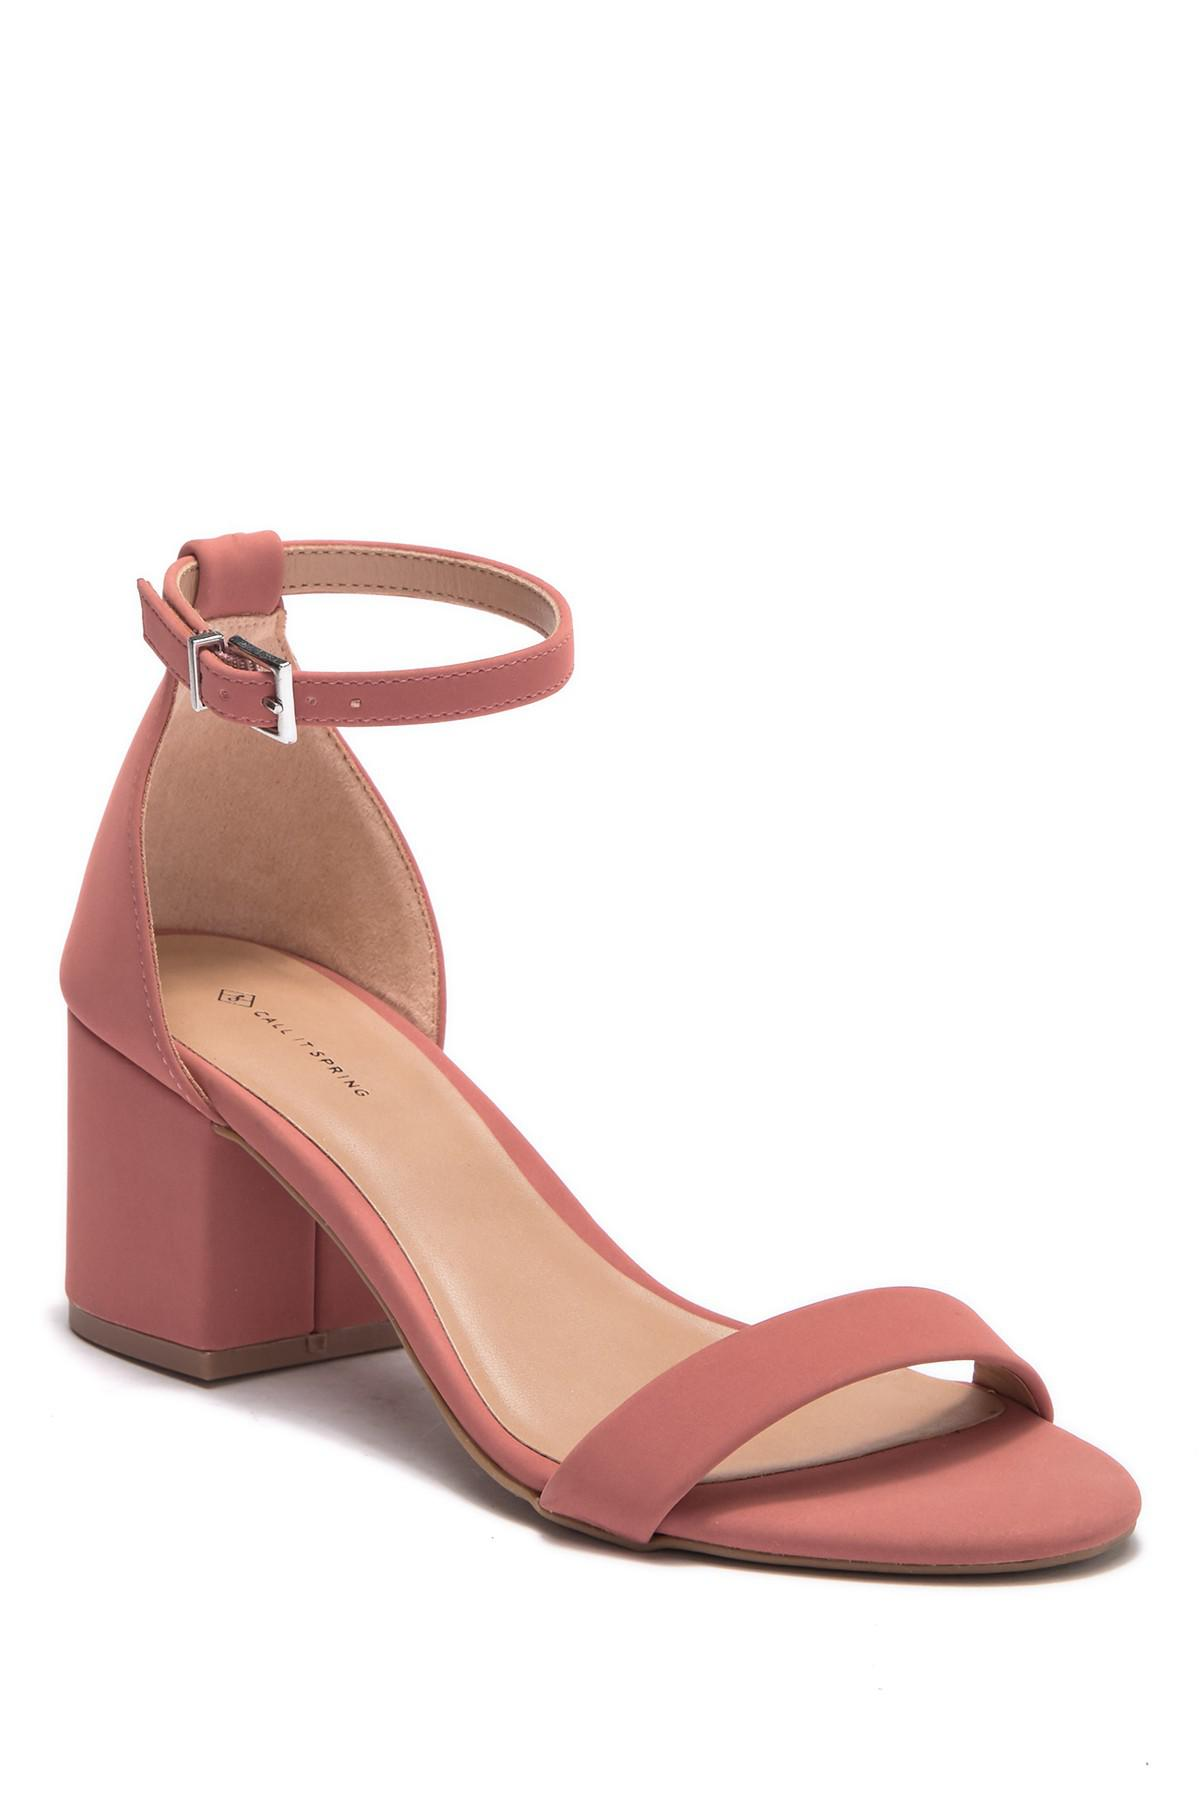 e8e898b438c7 Gallery. Previously sold at  Nordstrom Rack · Women s Strappy Heels ...